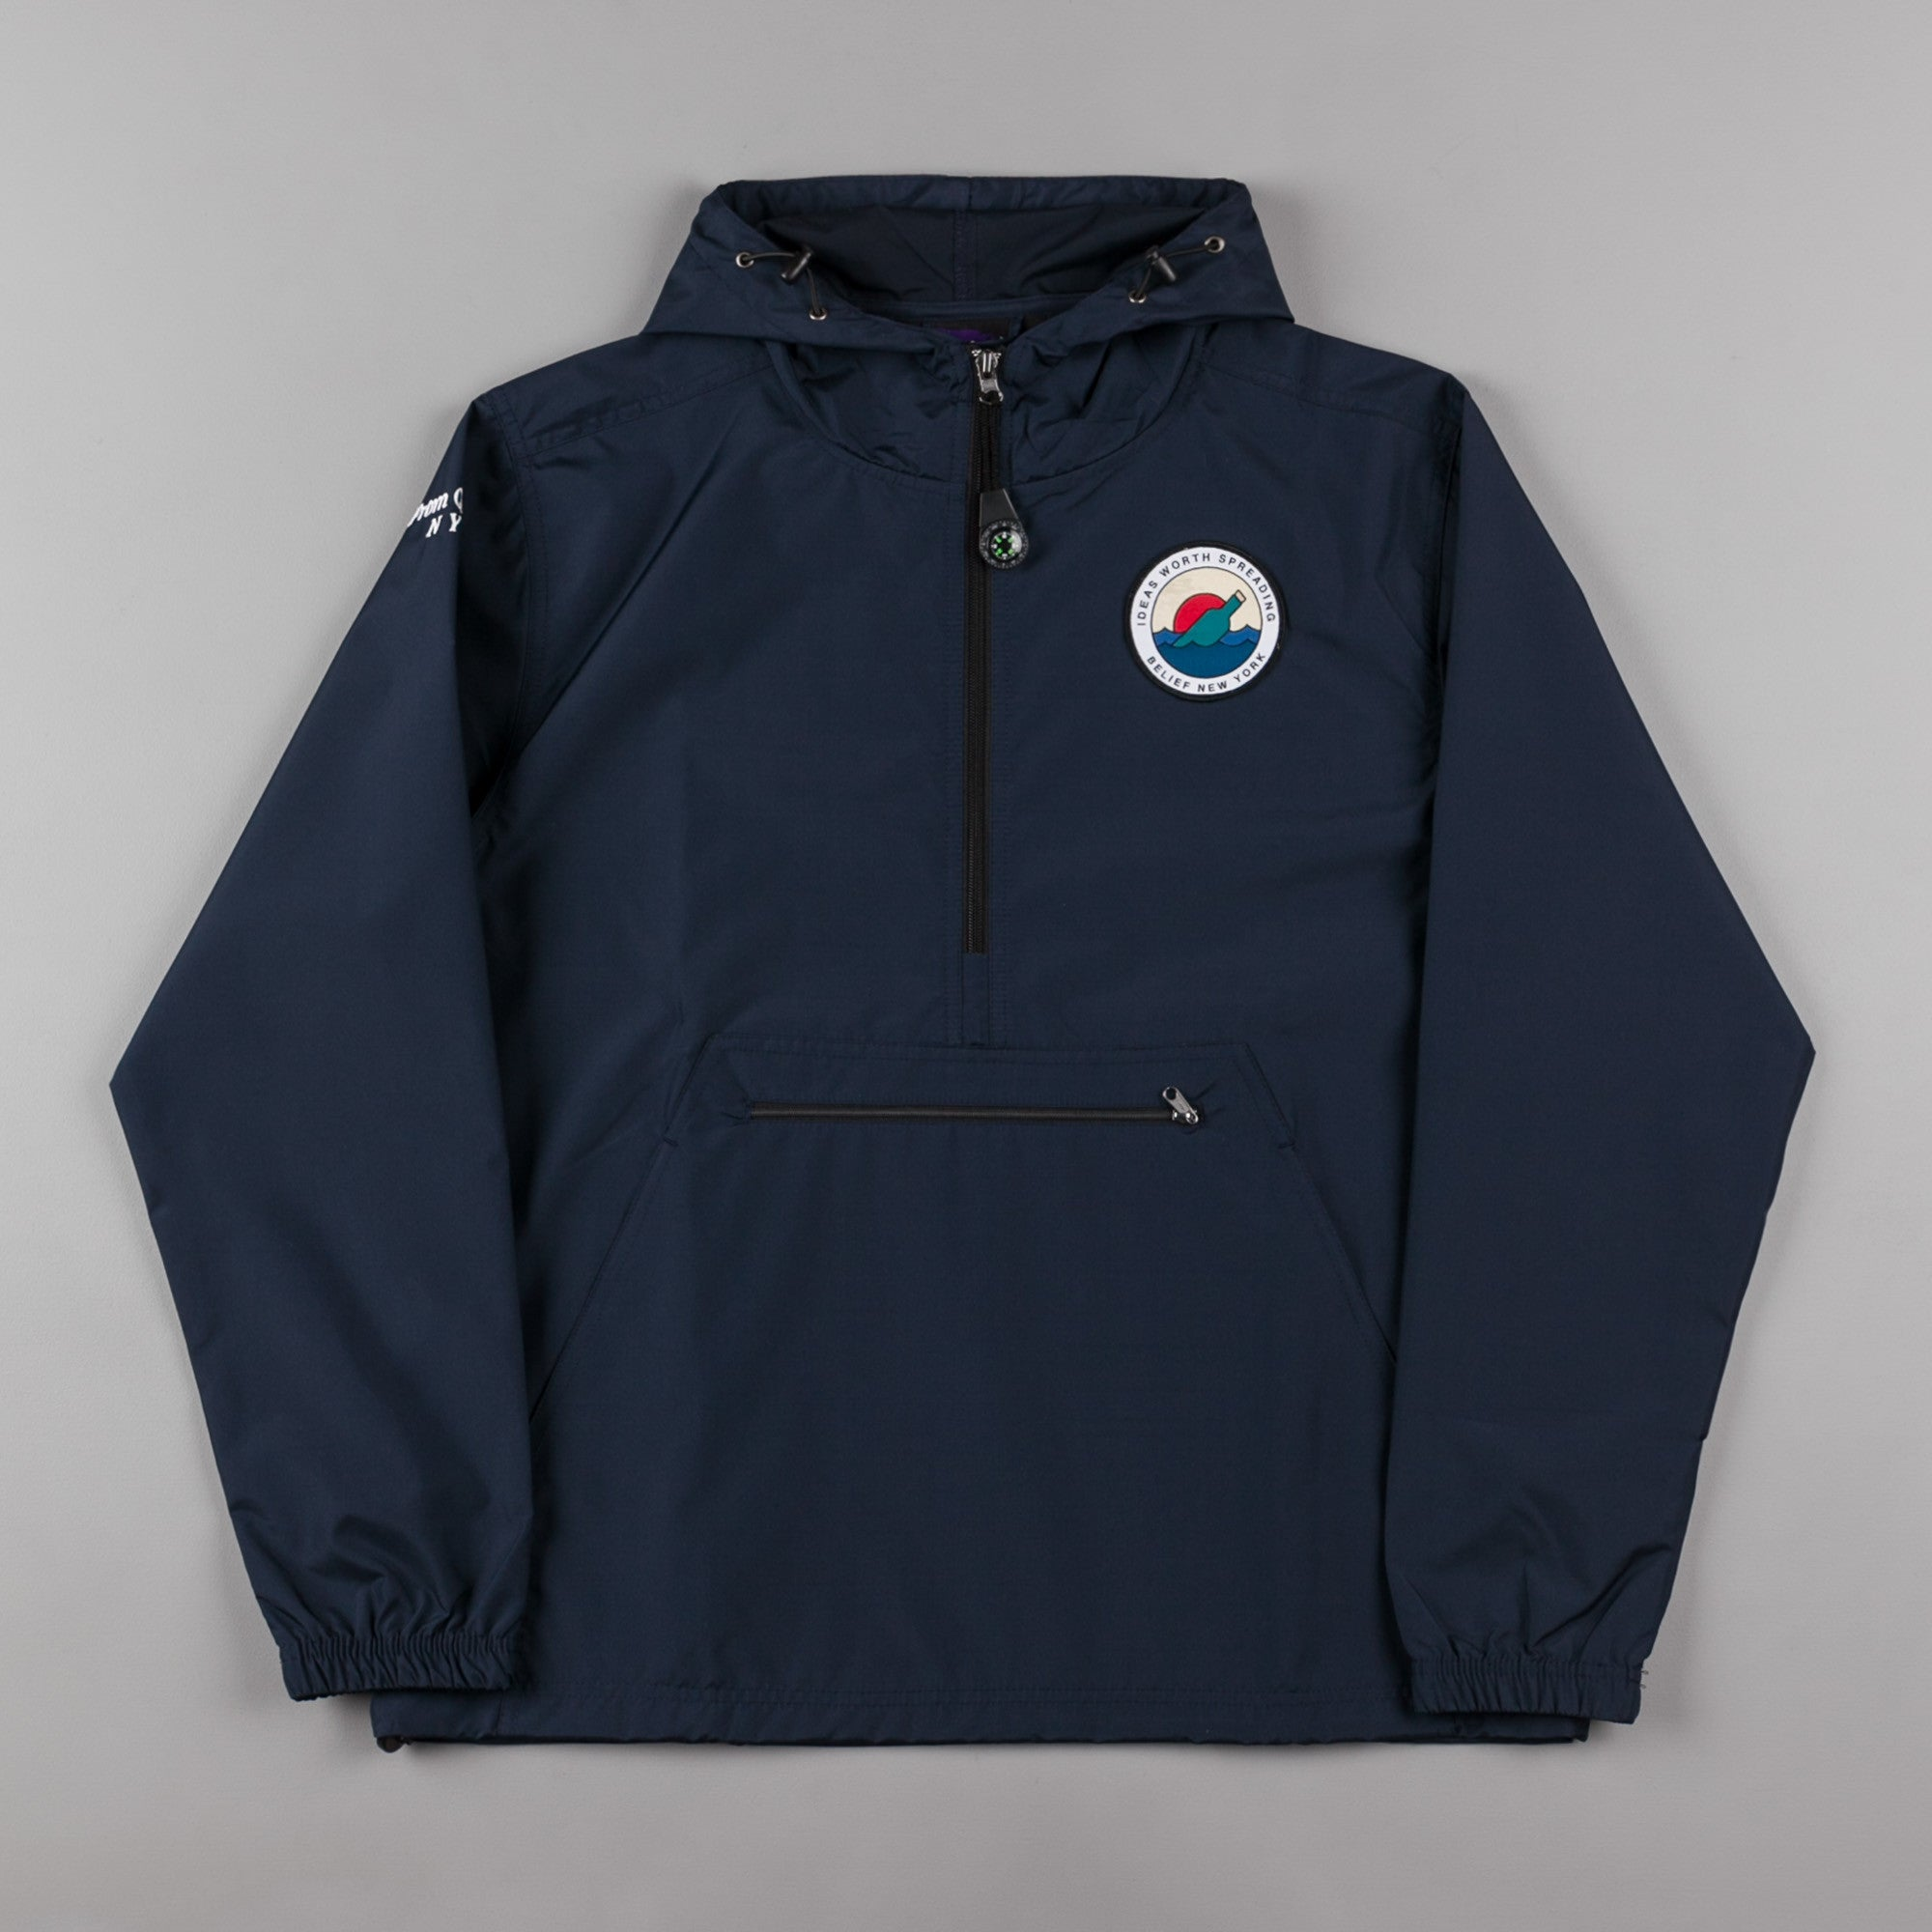 Belief Message Windbreaker Jacket - Navy